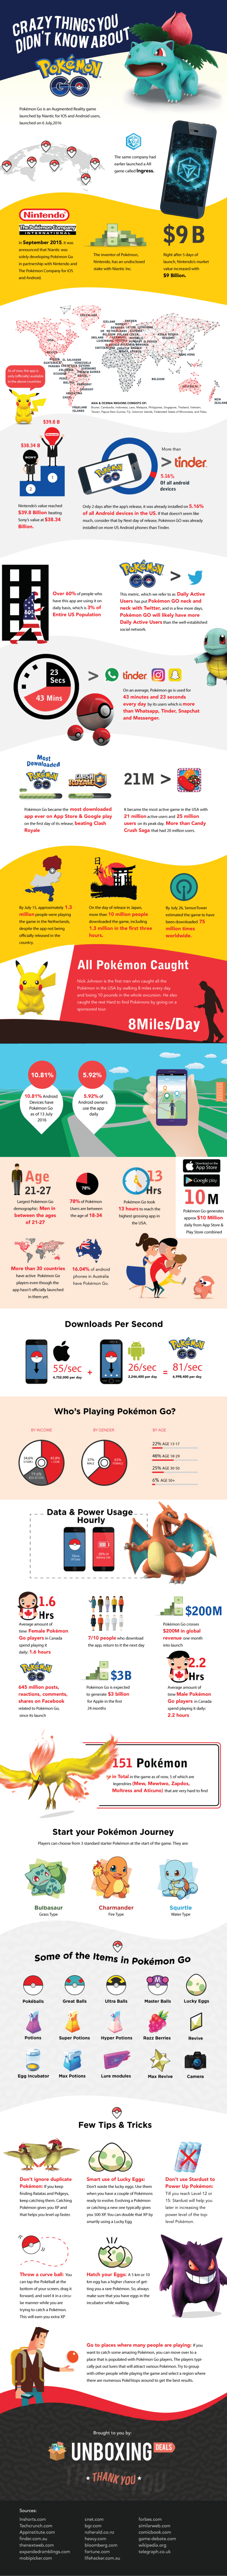 Crazy Things You Didn't Know About Pokémon Go [Infographic]